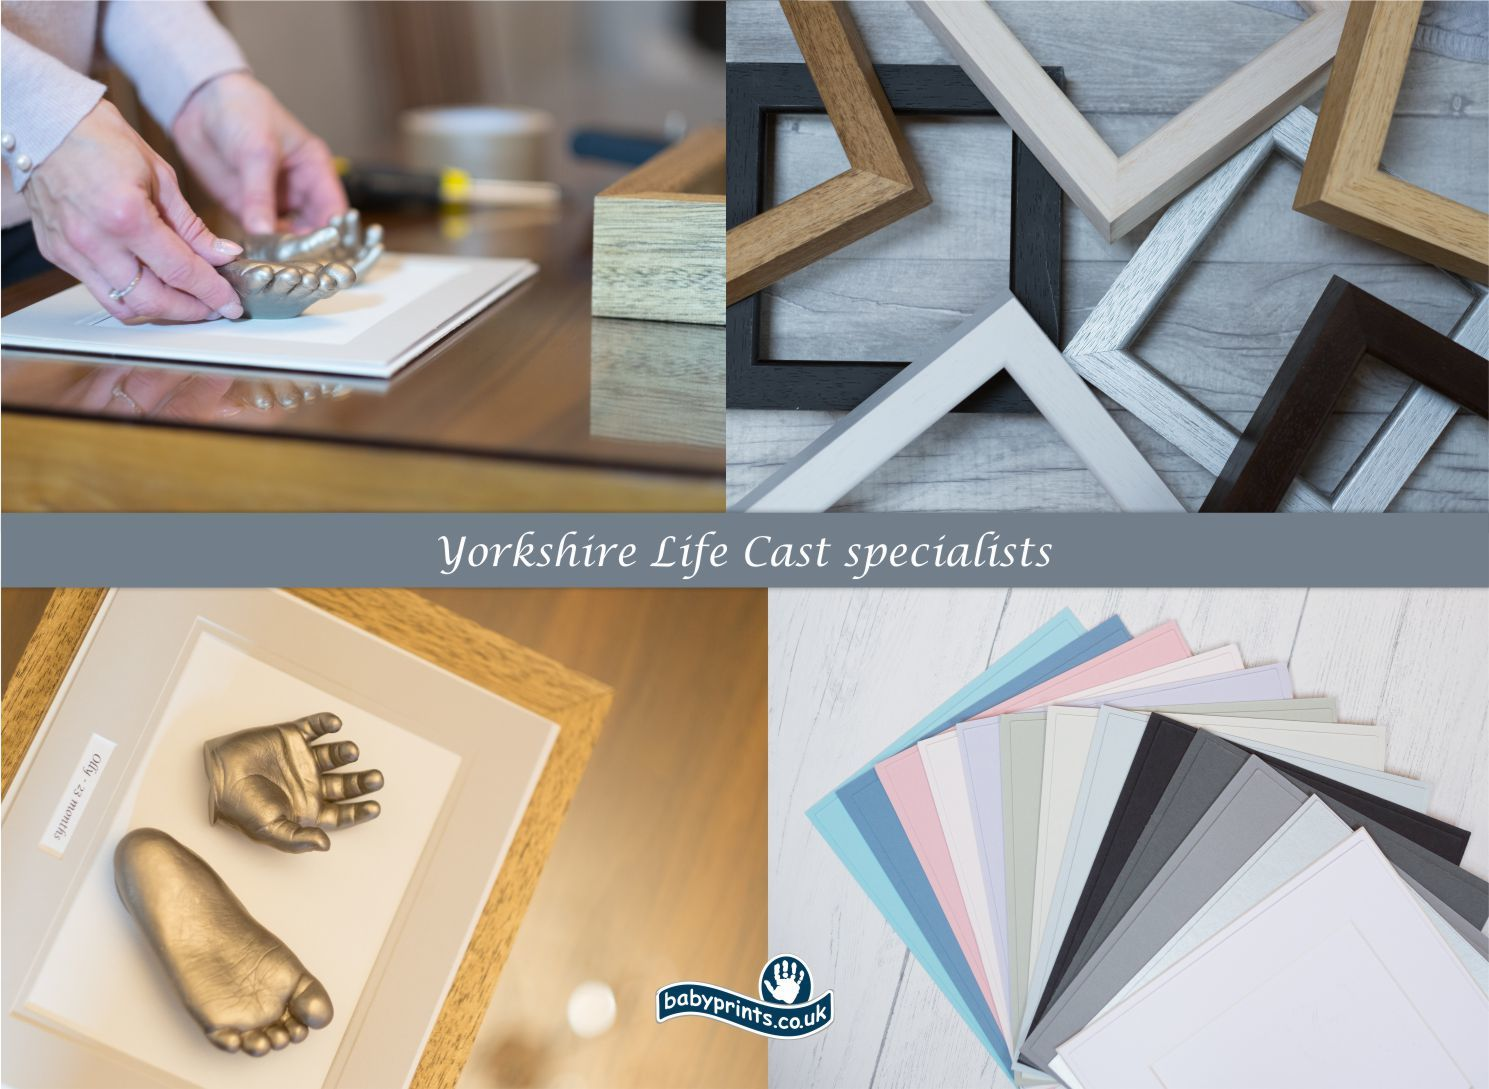 Yorkshire Life Cast specialists